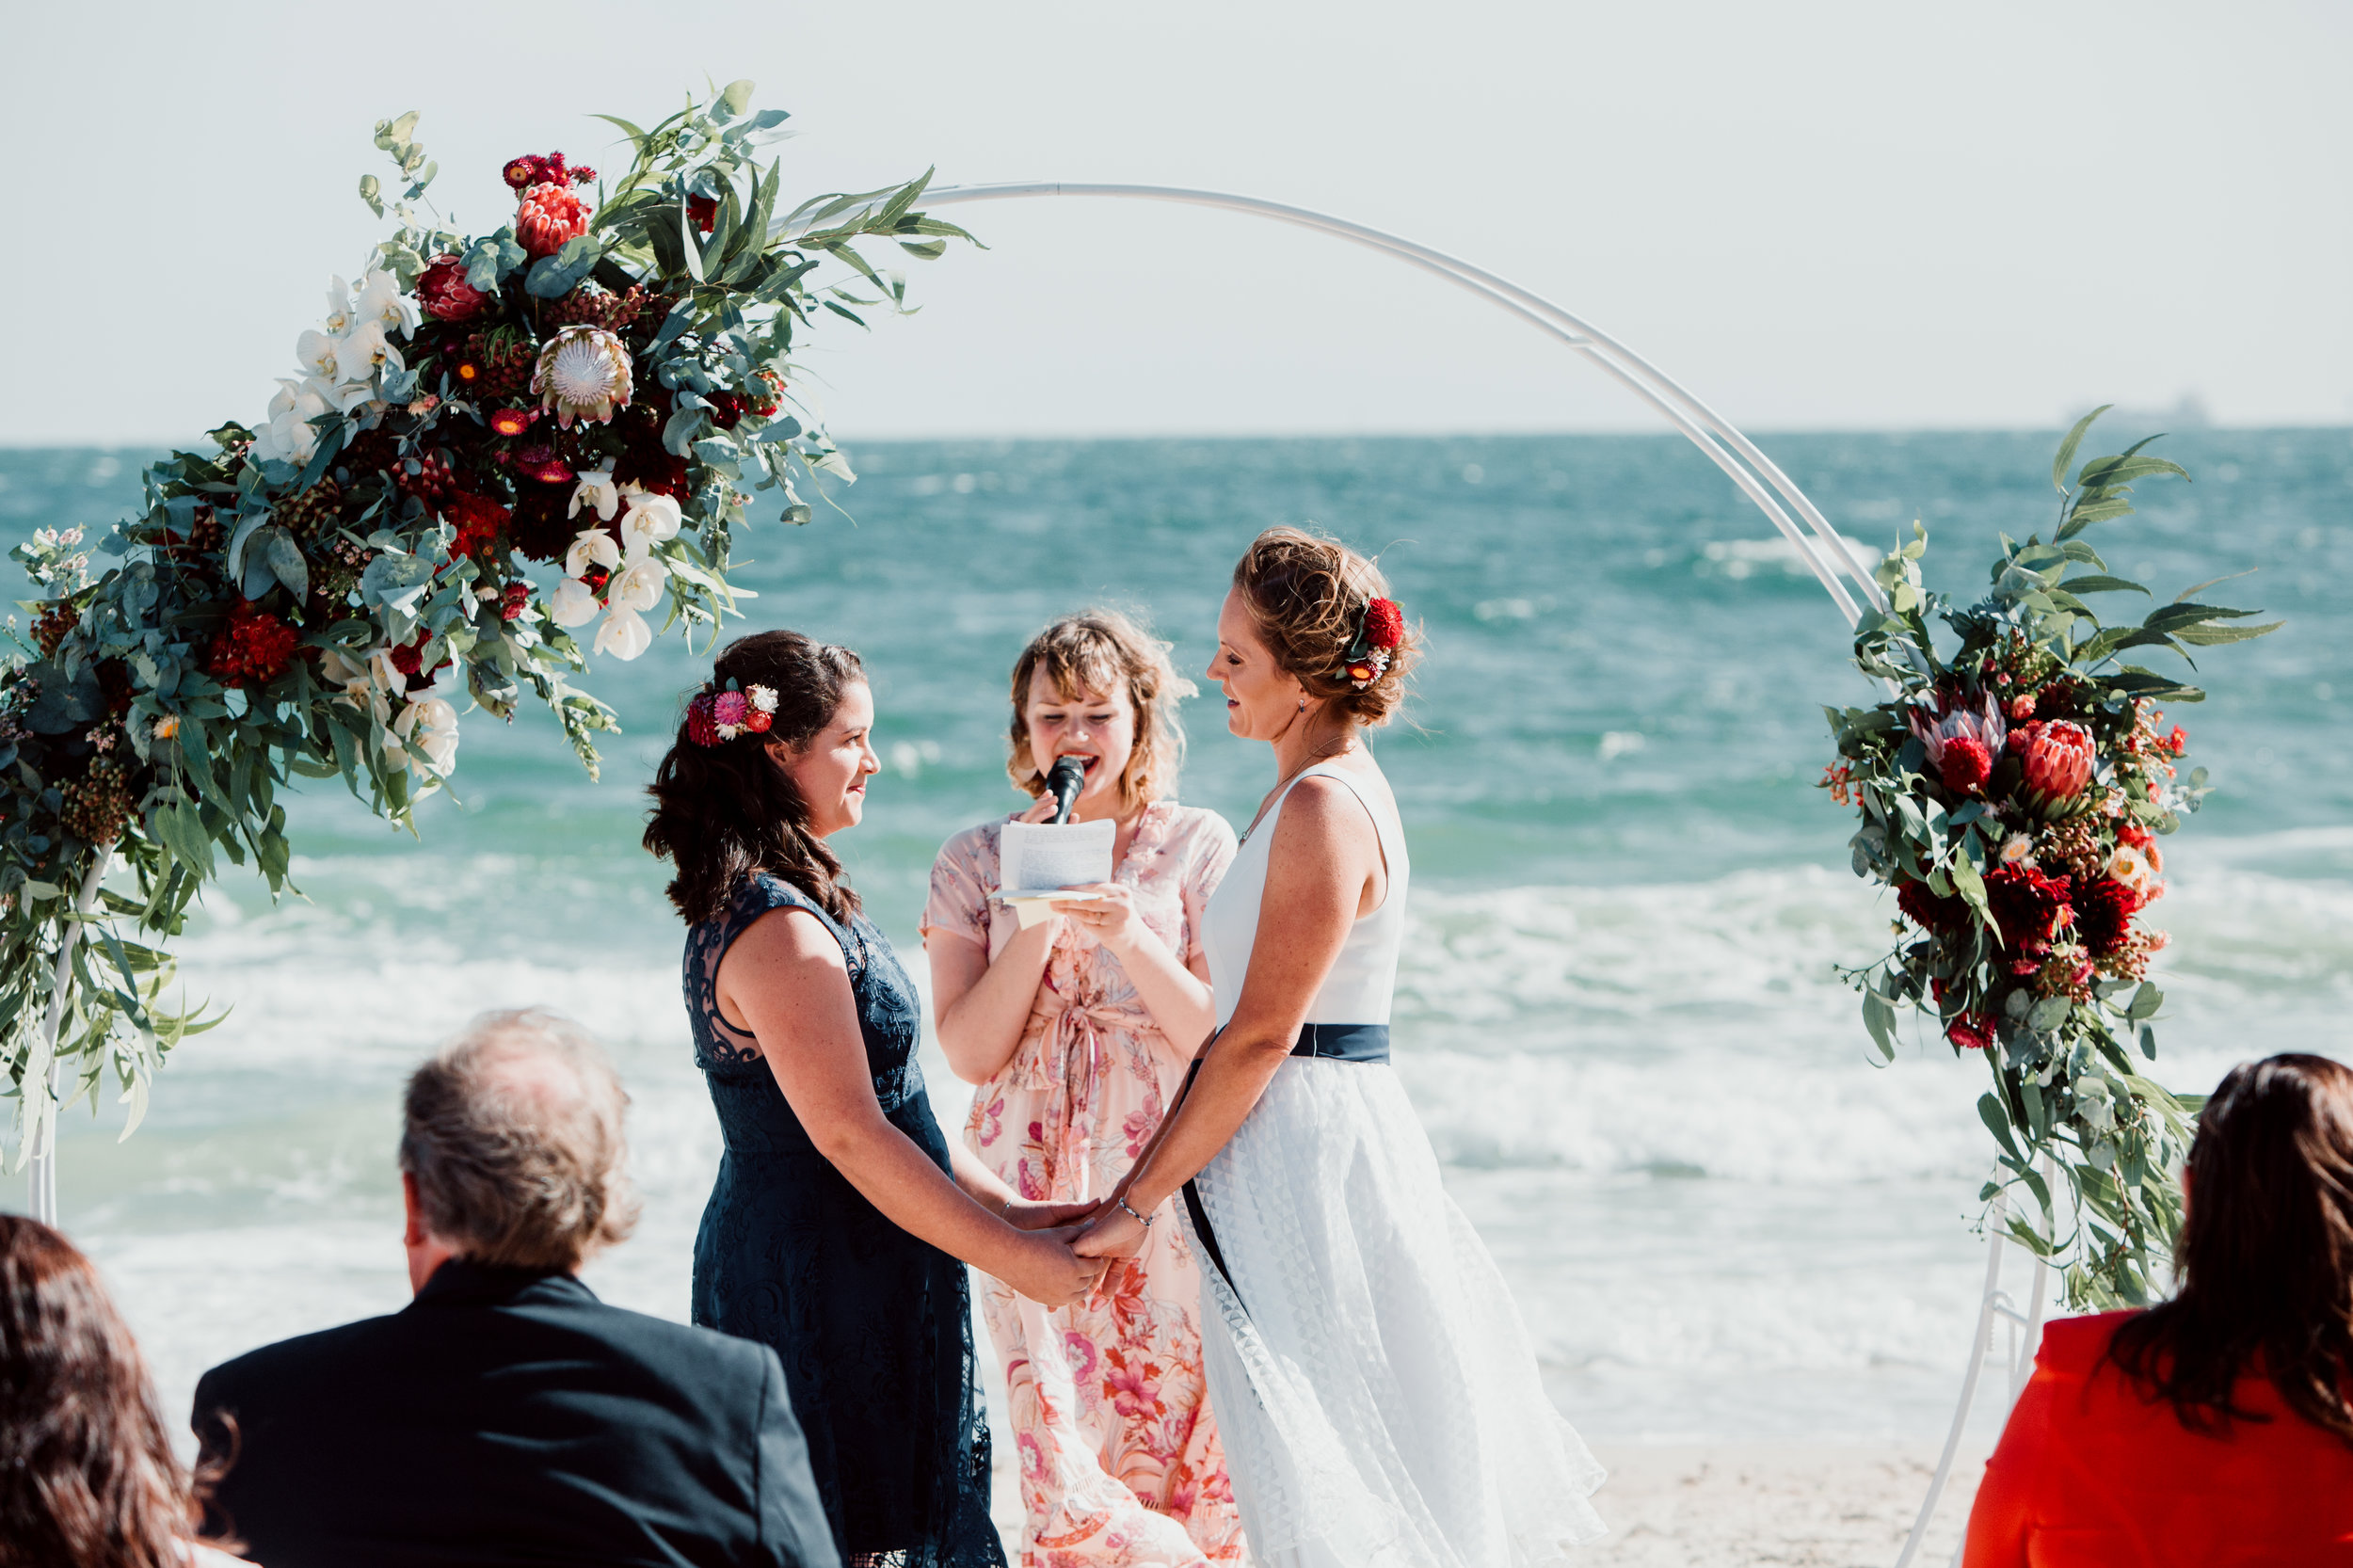 Rebecca & Kara   Venue: The Sandbar  Rebecca & Kara wanted a simple wedding with native flowers set against the sunset on the beach.  Both brides opted for floral hair pieces instead of bouquets, and got married in front of a floral arbour.  Photographer: Neil Hole Photography